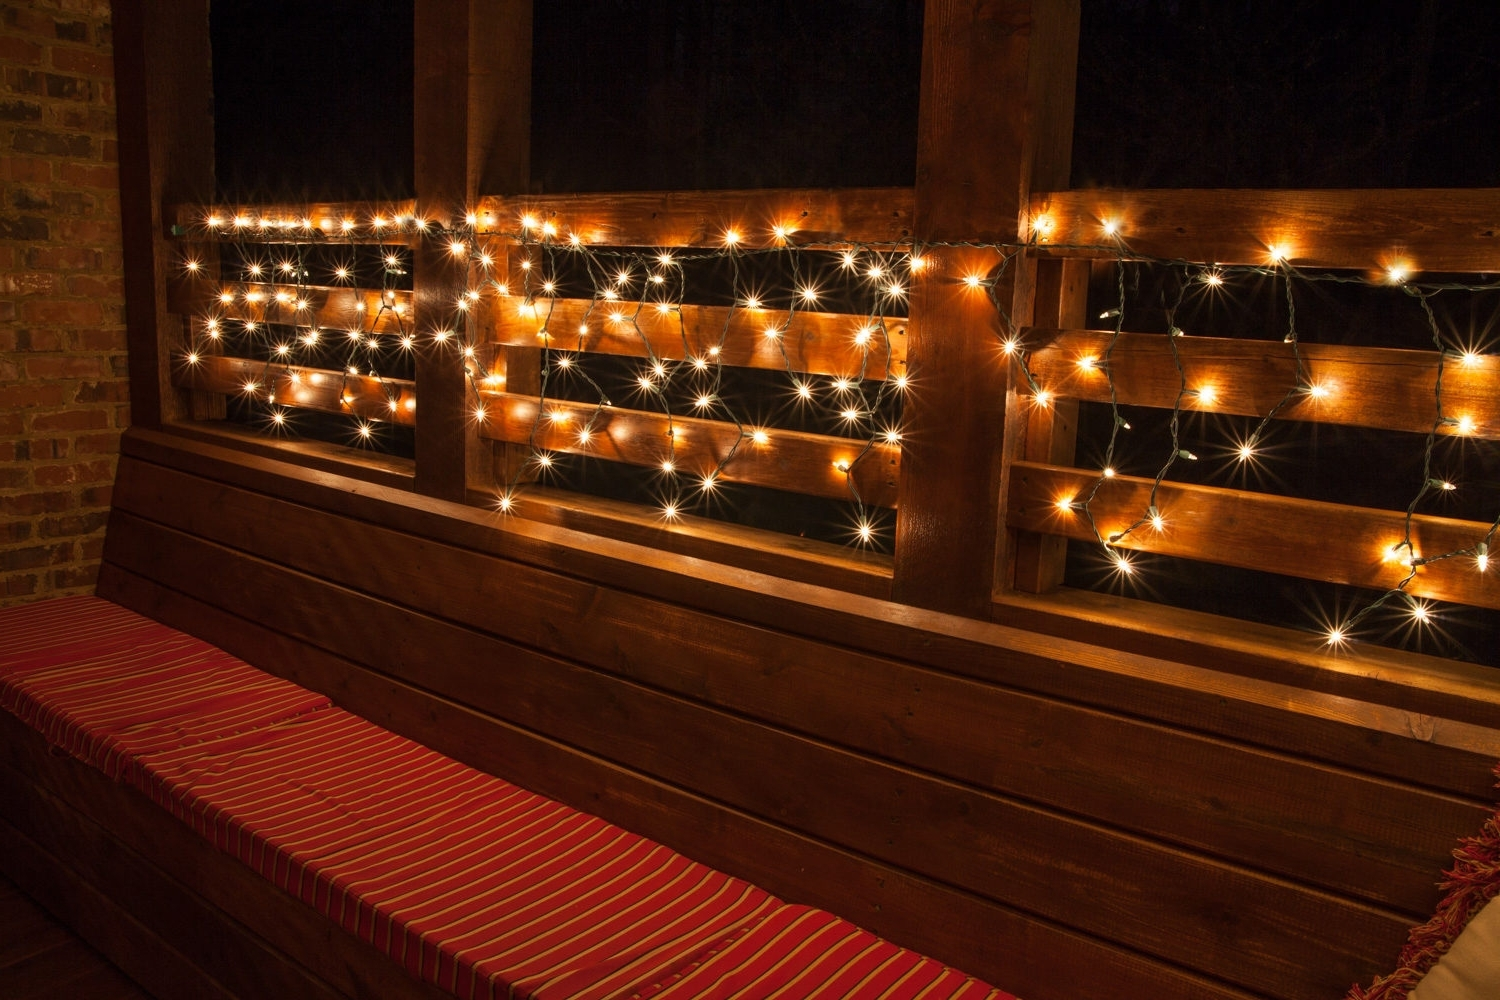 Deck Lighting Ideas With Brilliant Results! – Yard Envy With Most Recent Hanging Outdoor Lights On Deck (View 2 of 20)